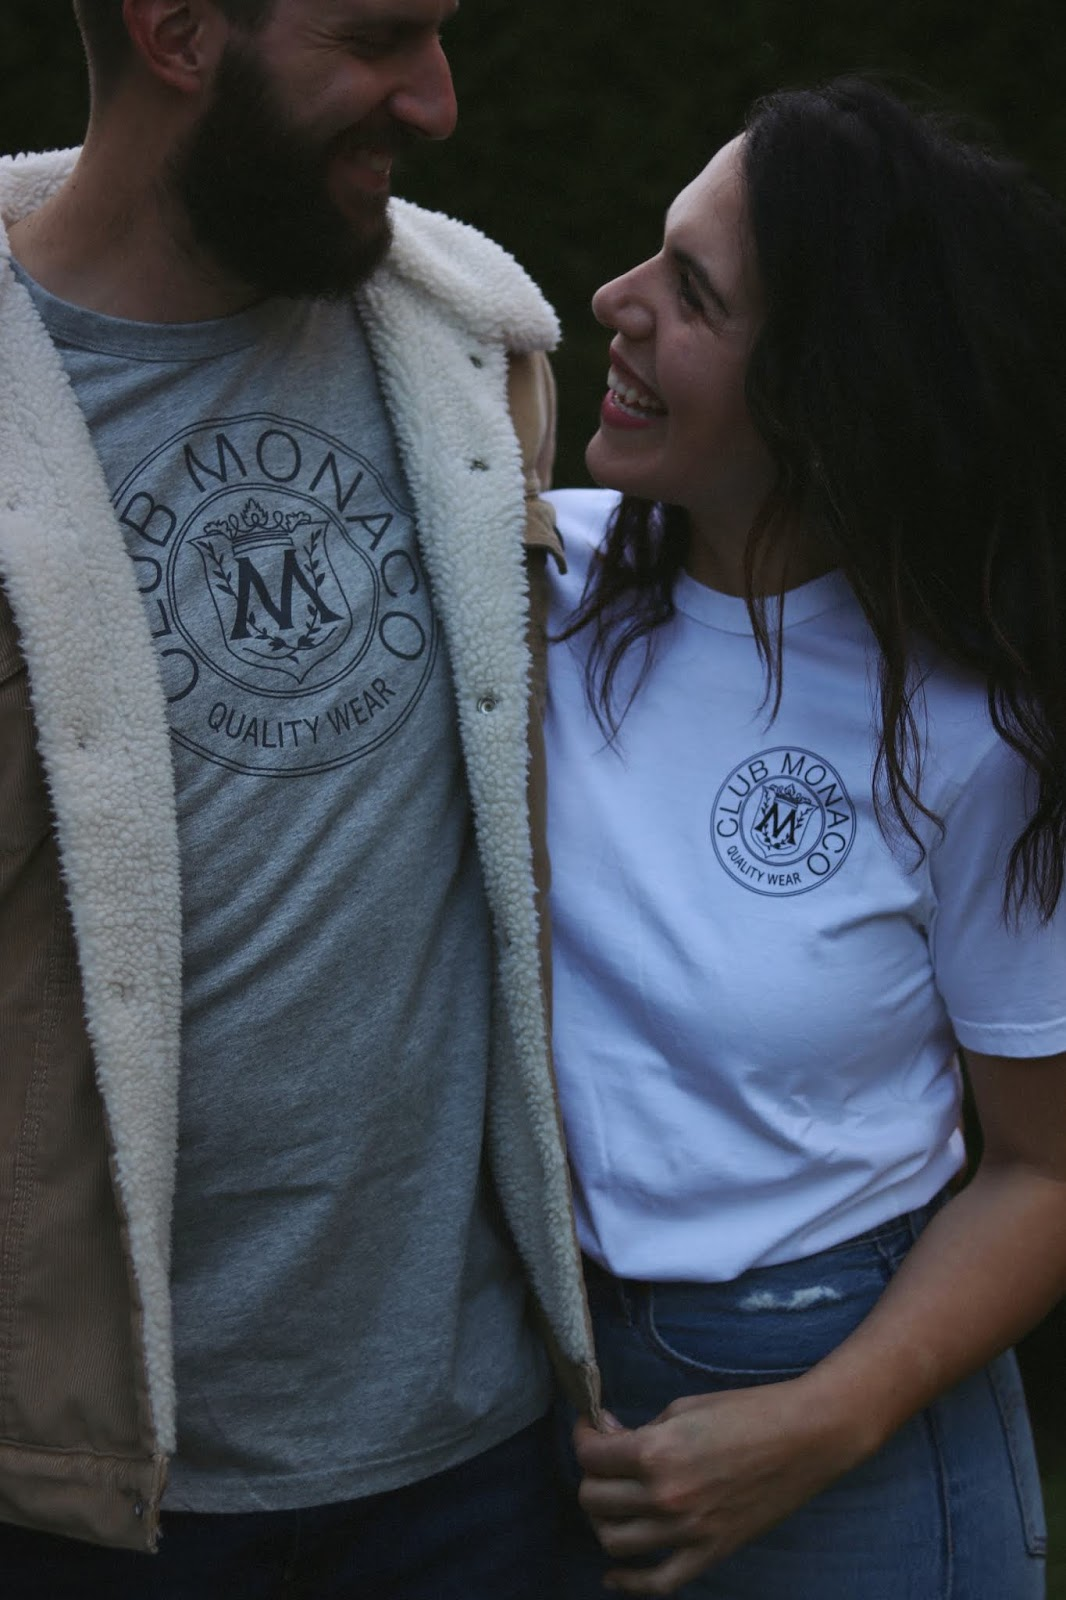 Club Monaco x Reigning champ t-shirt blogger aleesha harris vancouver style